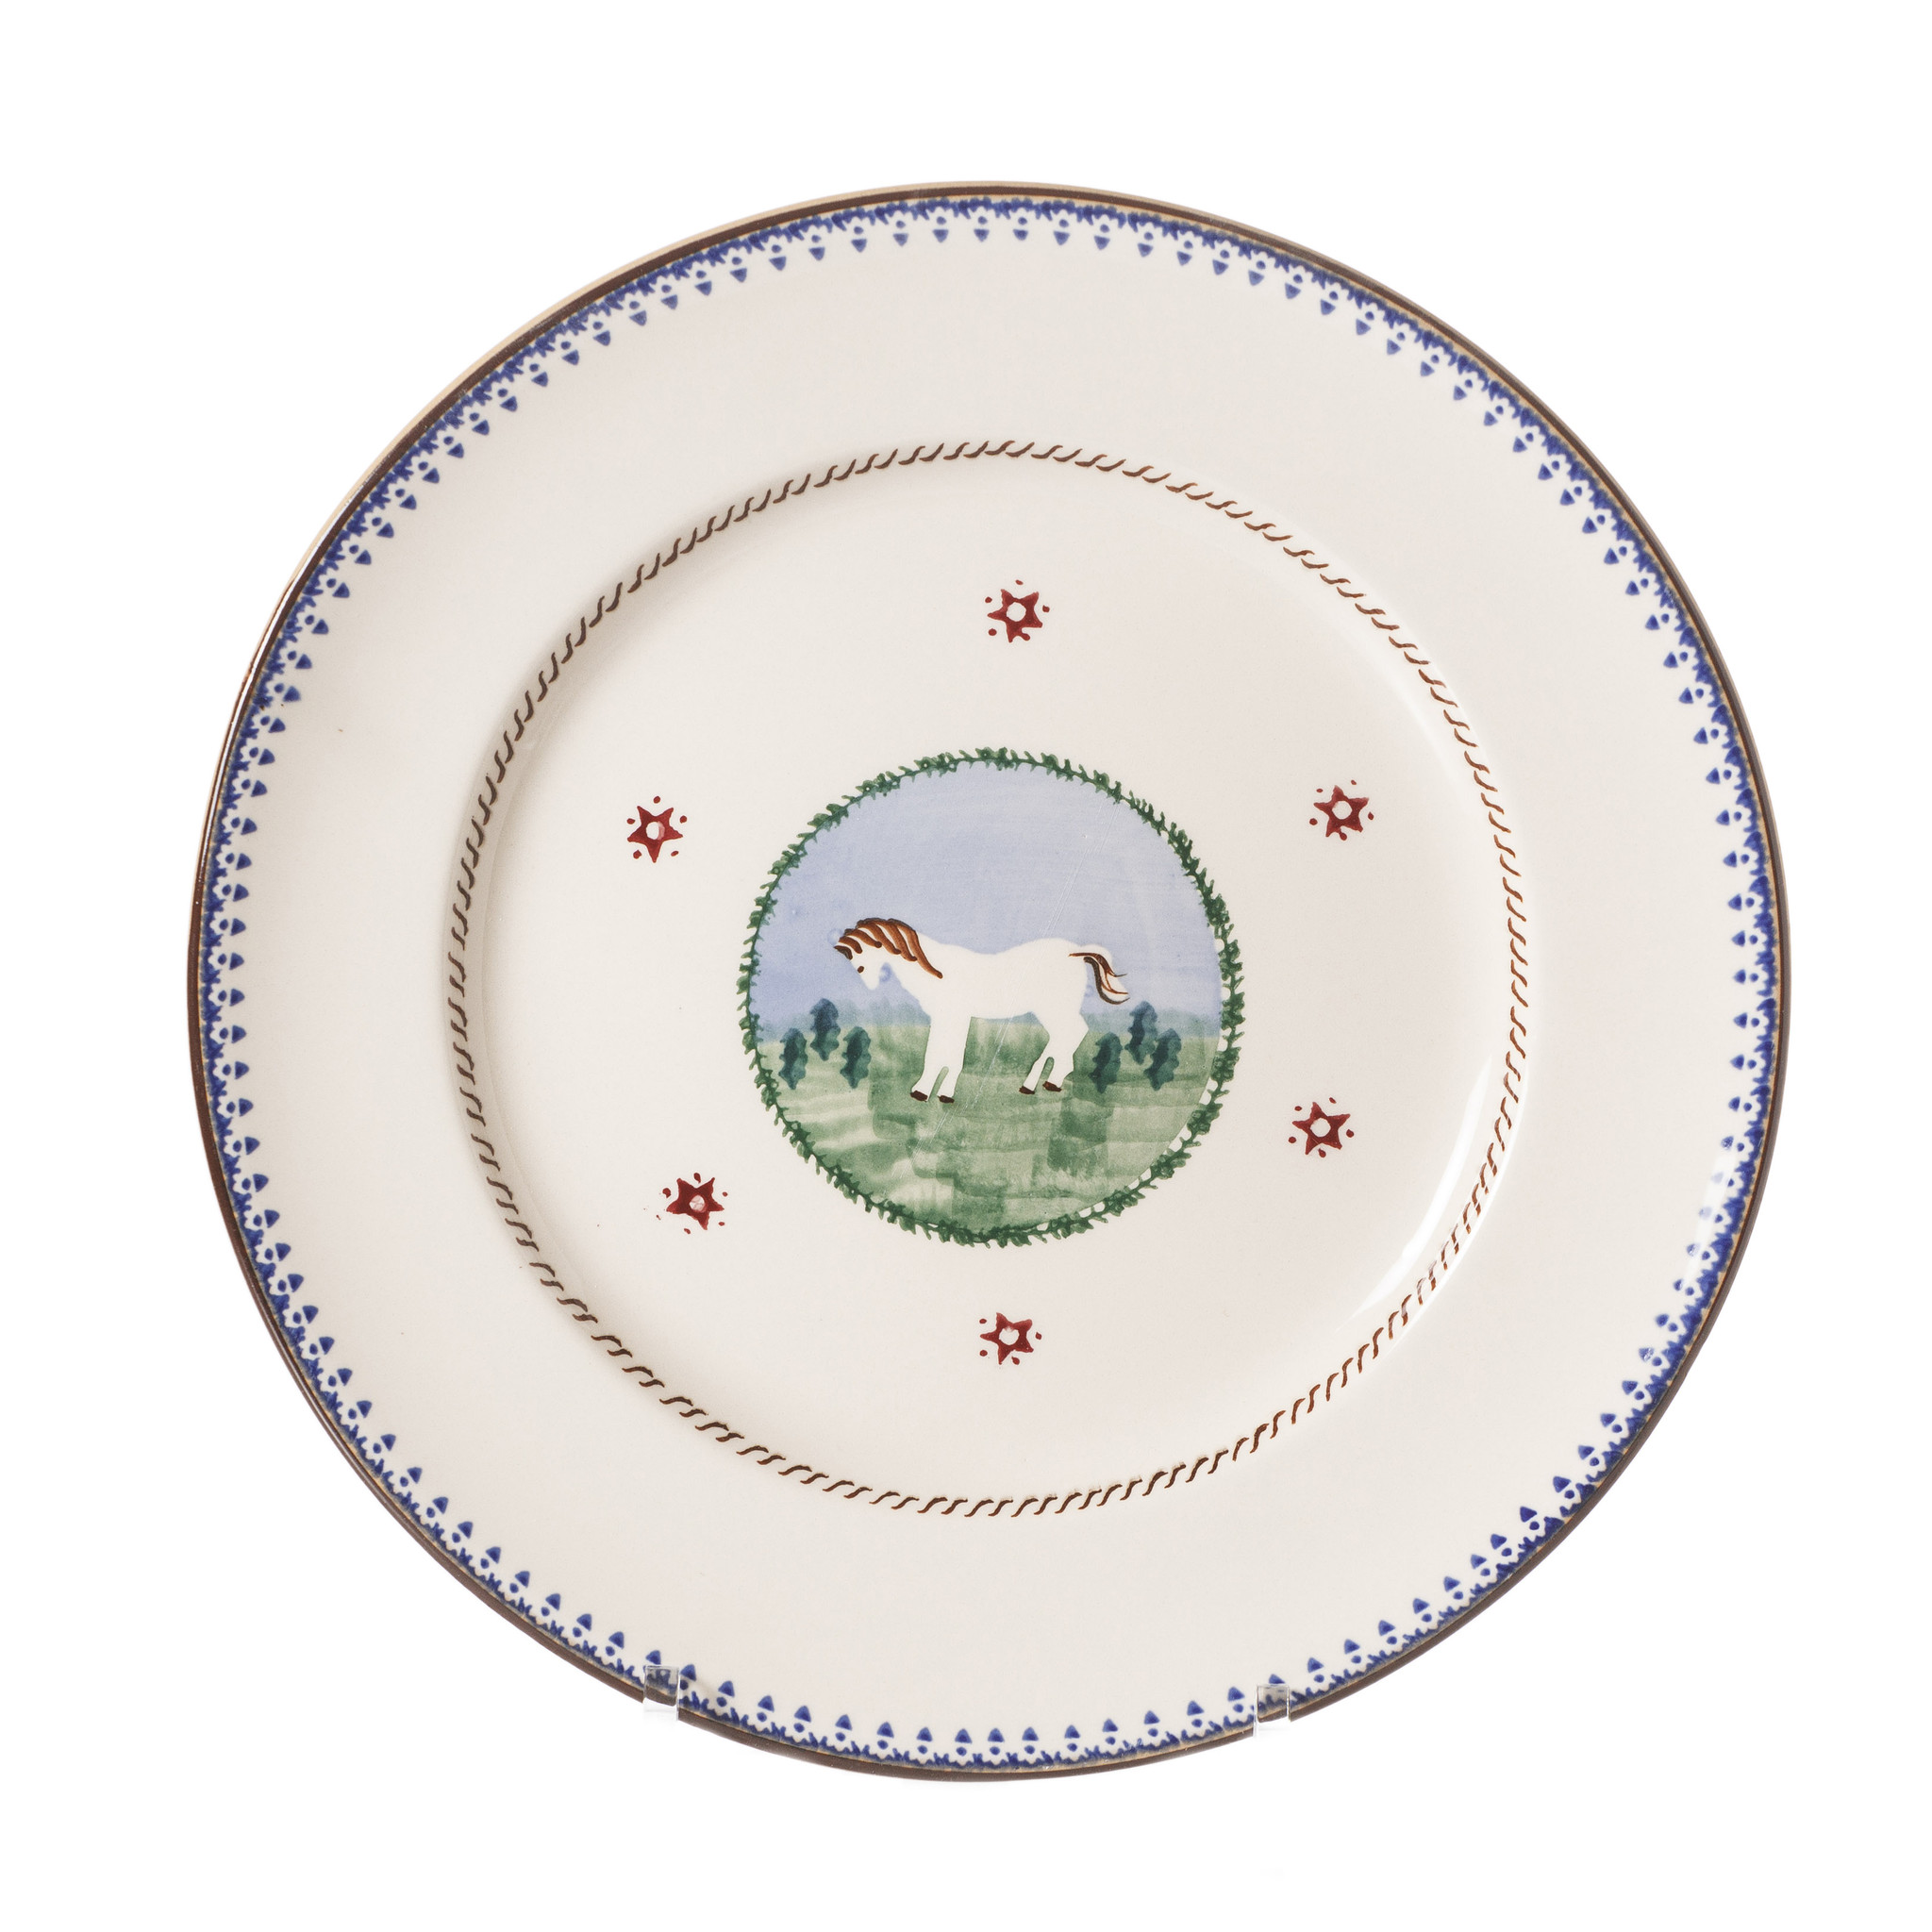 Pony Dinner Plate -1 available